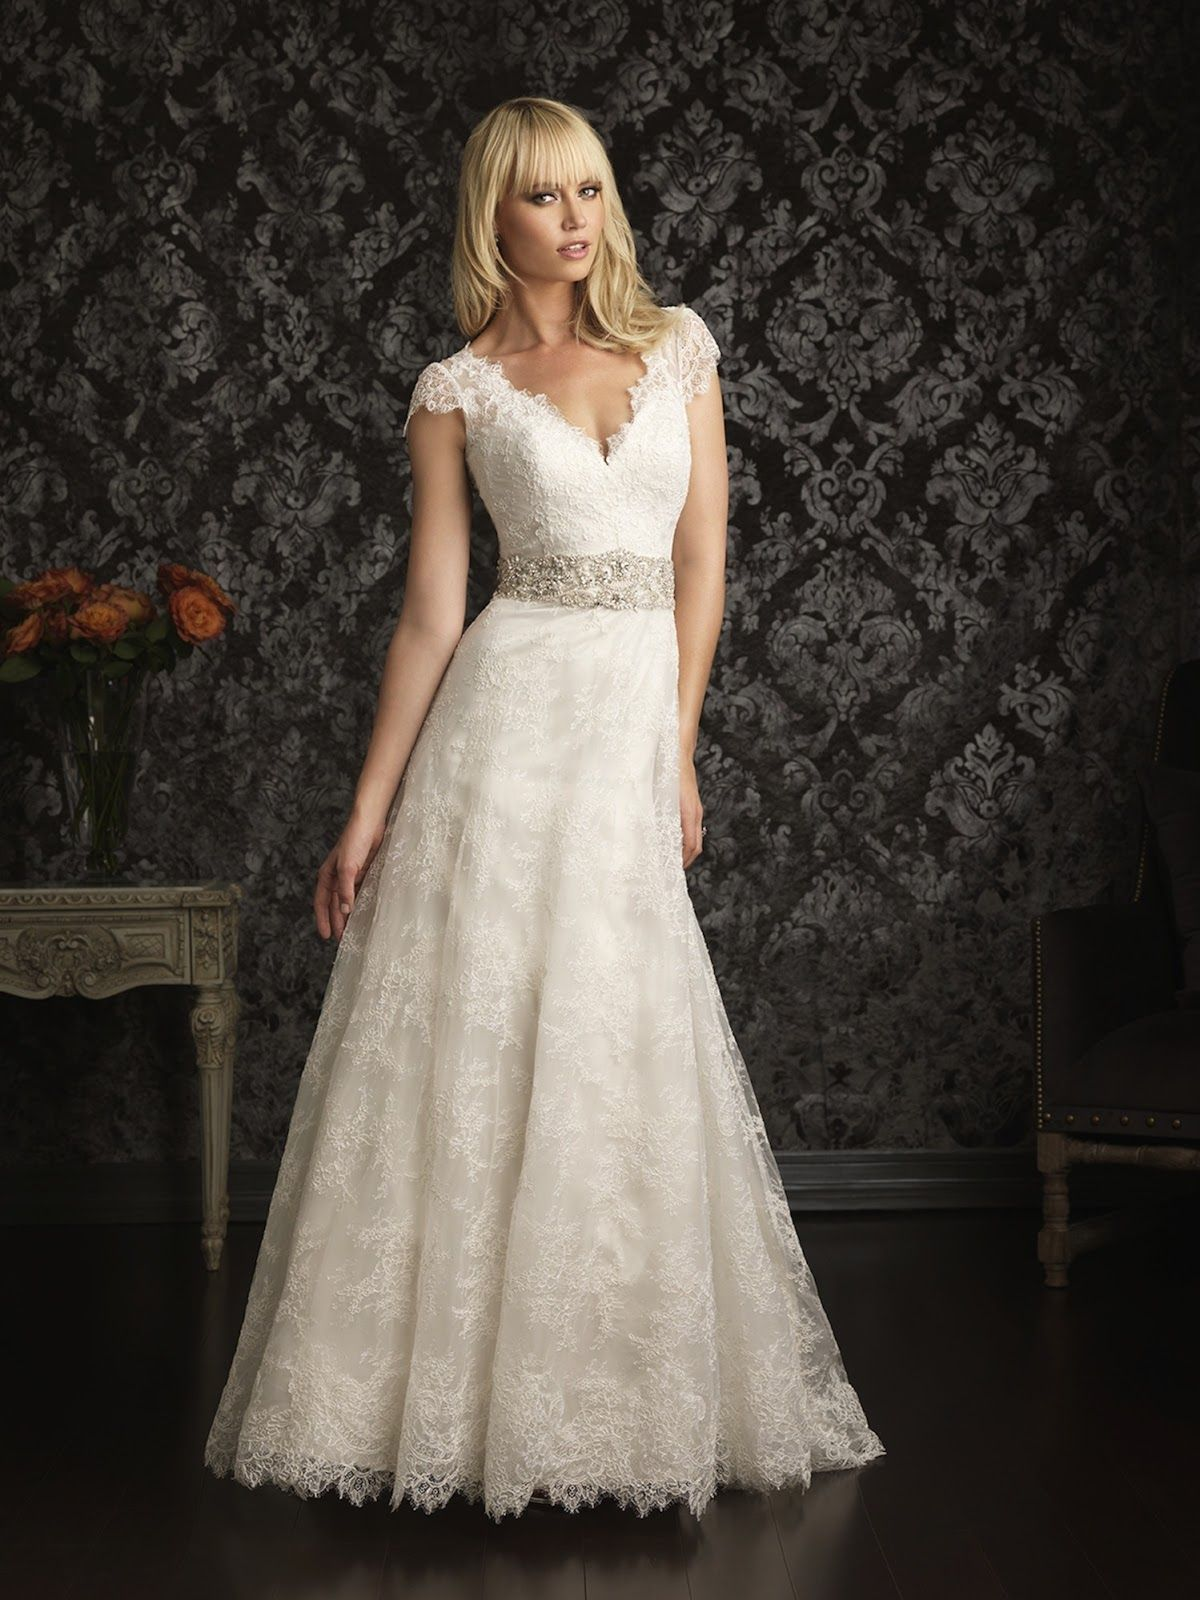 Wedding Dresses For Apple Shaped Bodies